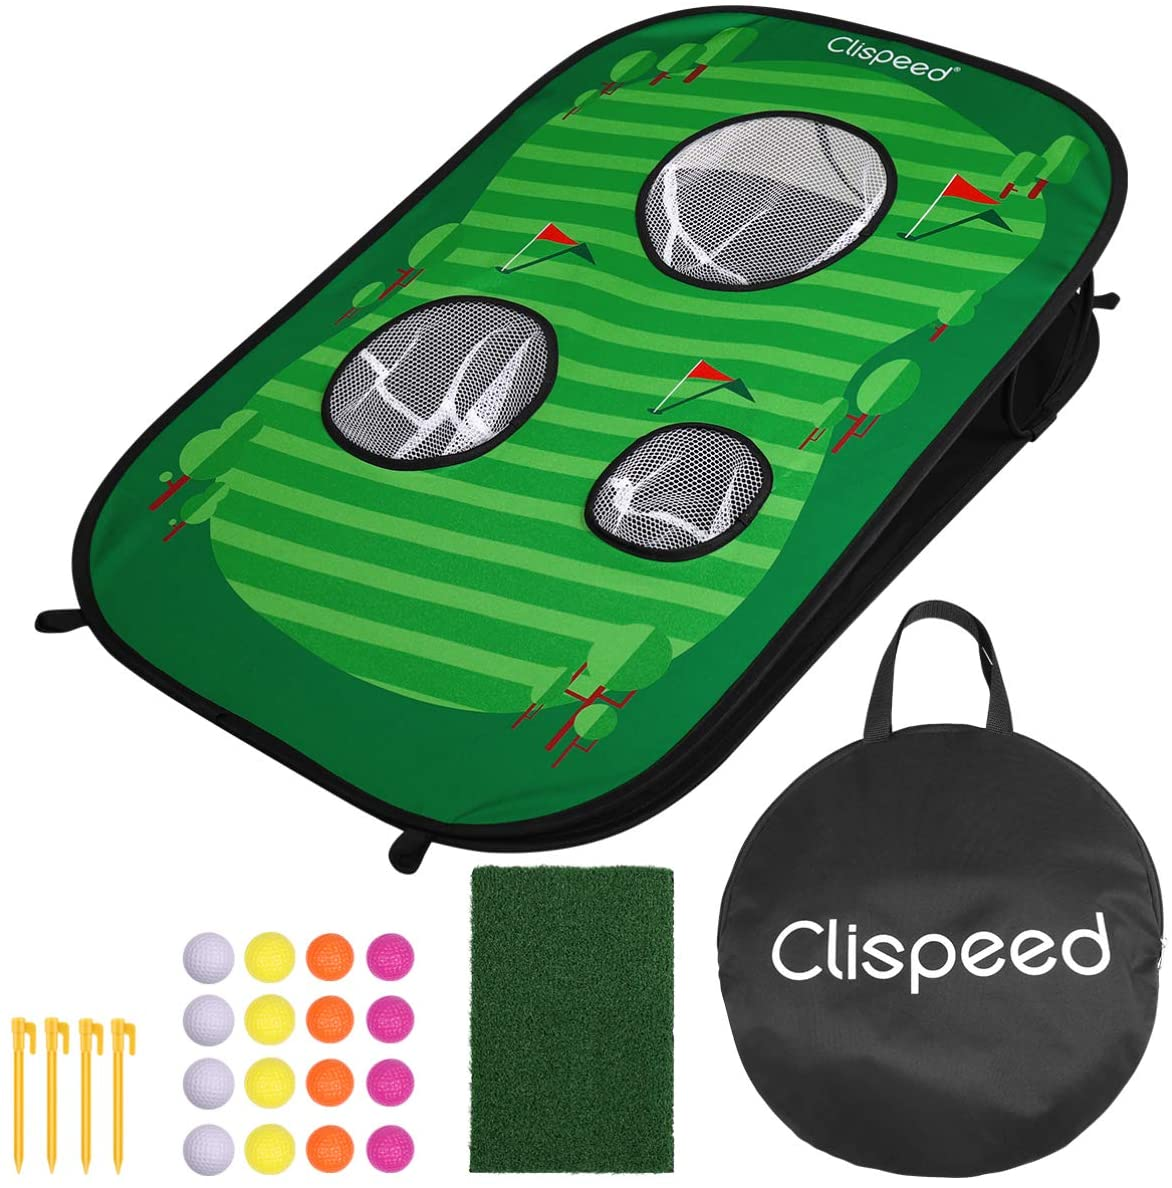 CLISPEED Lightweight Foldable Golf Chipping Net Golf Target Net Cornhole Game Set for Golfing Practice Game Training Home Outdoor Indoor Sport